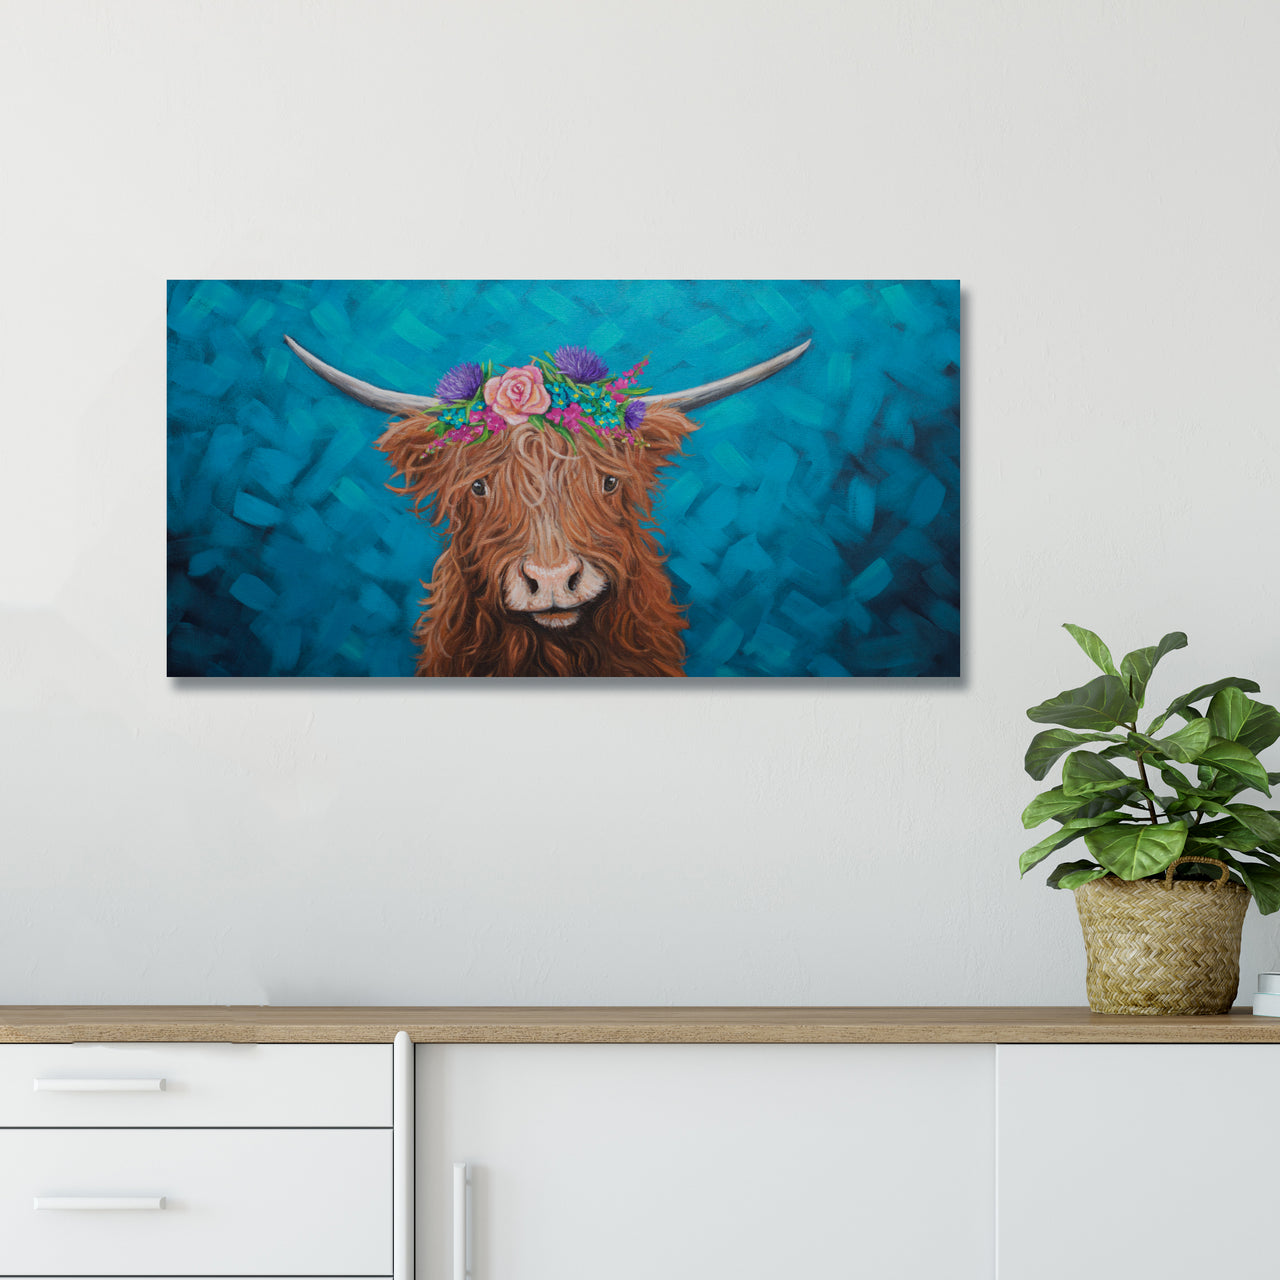 Highland Cow with Flower Crown Art Print